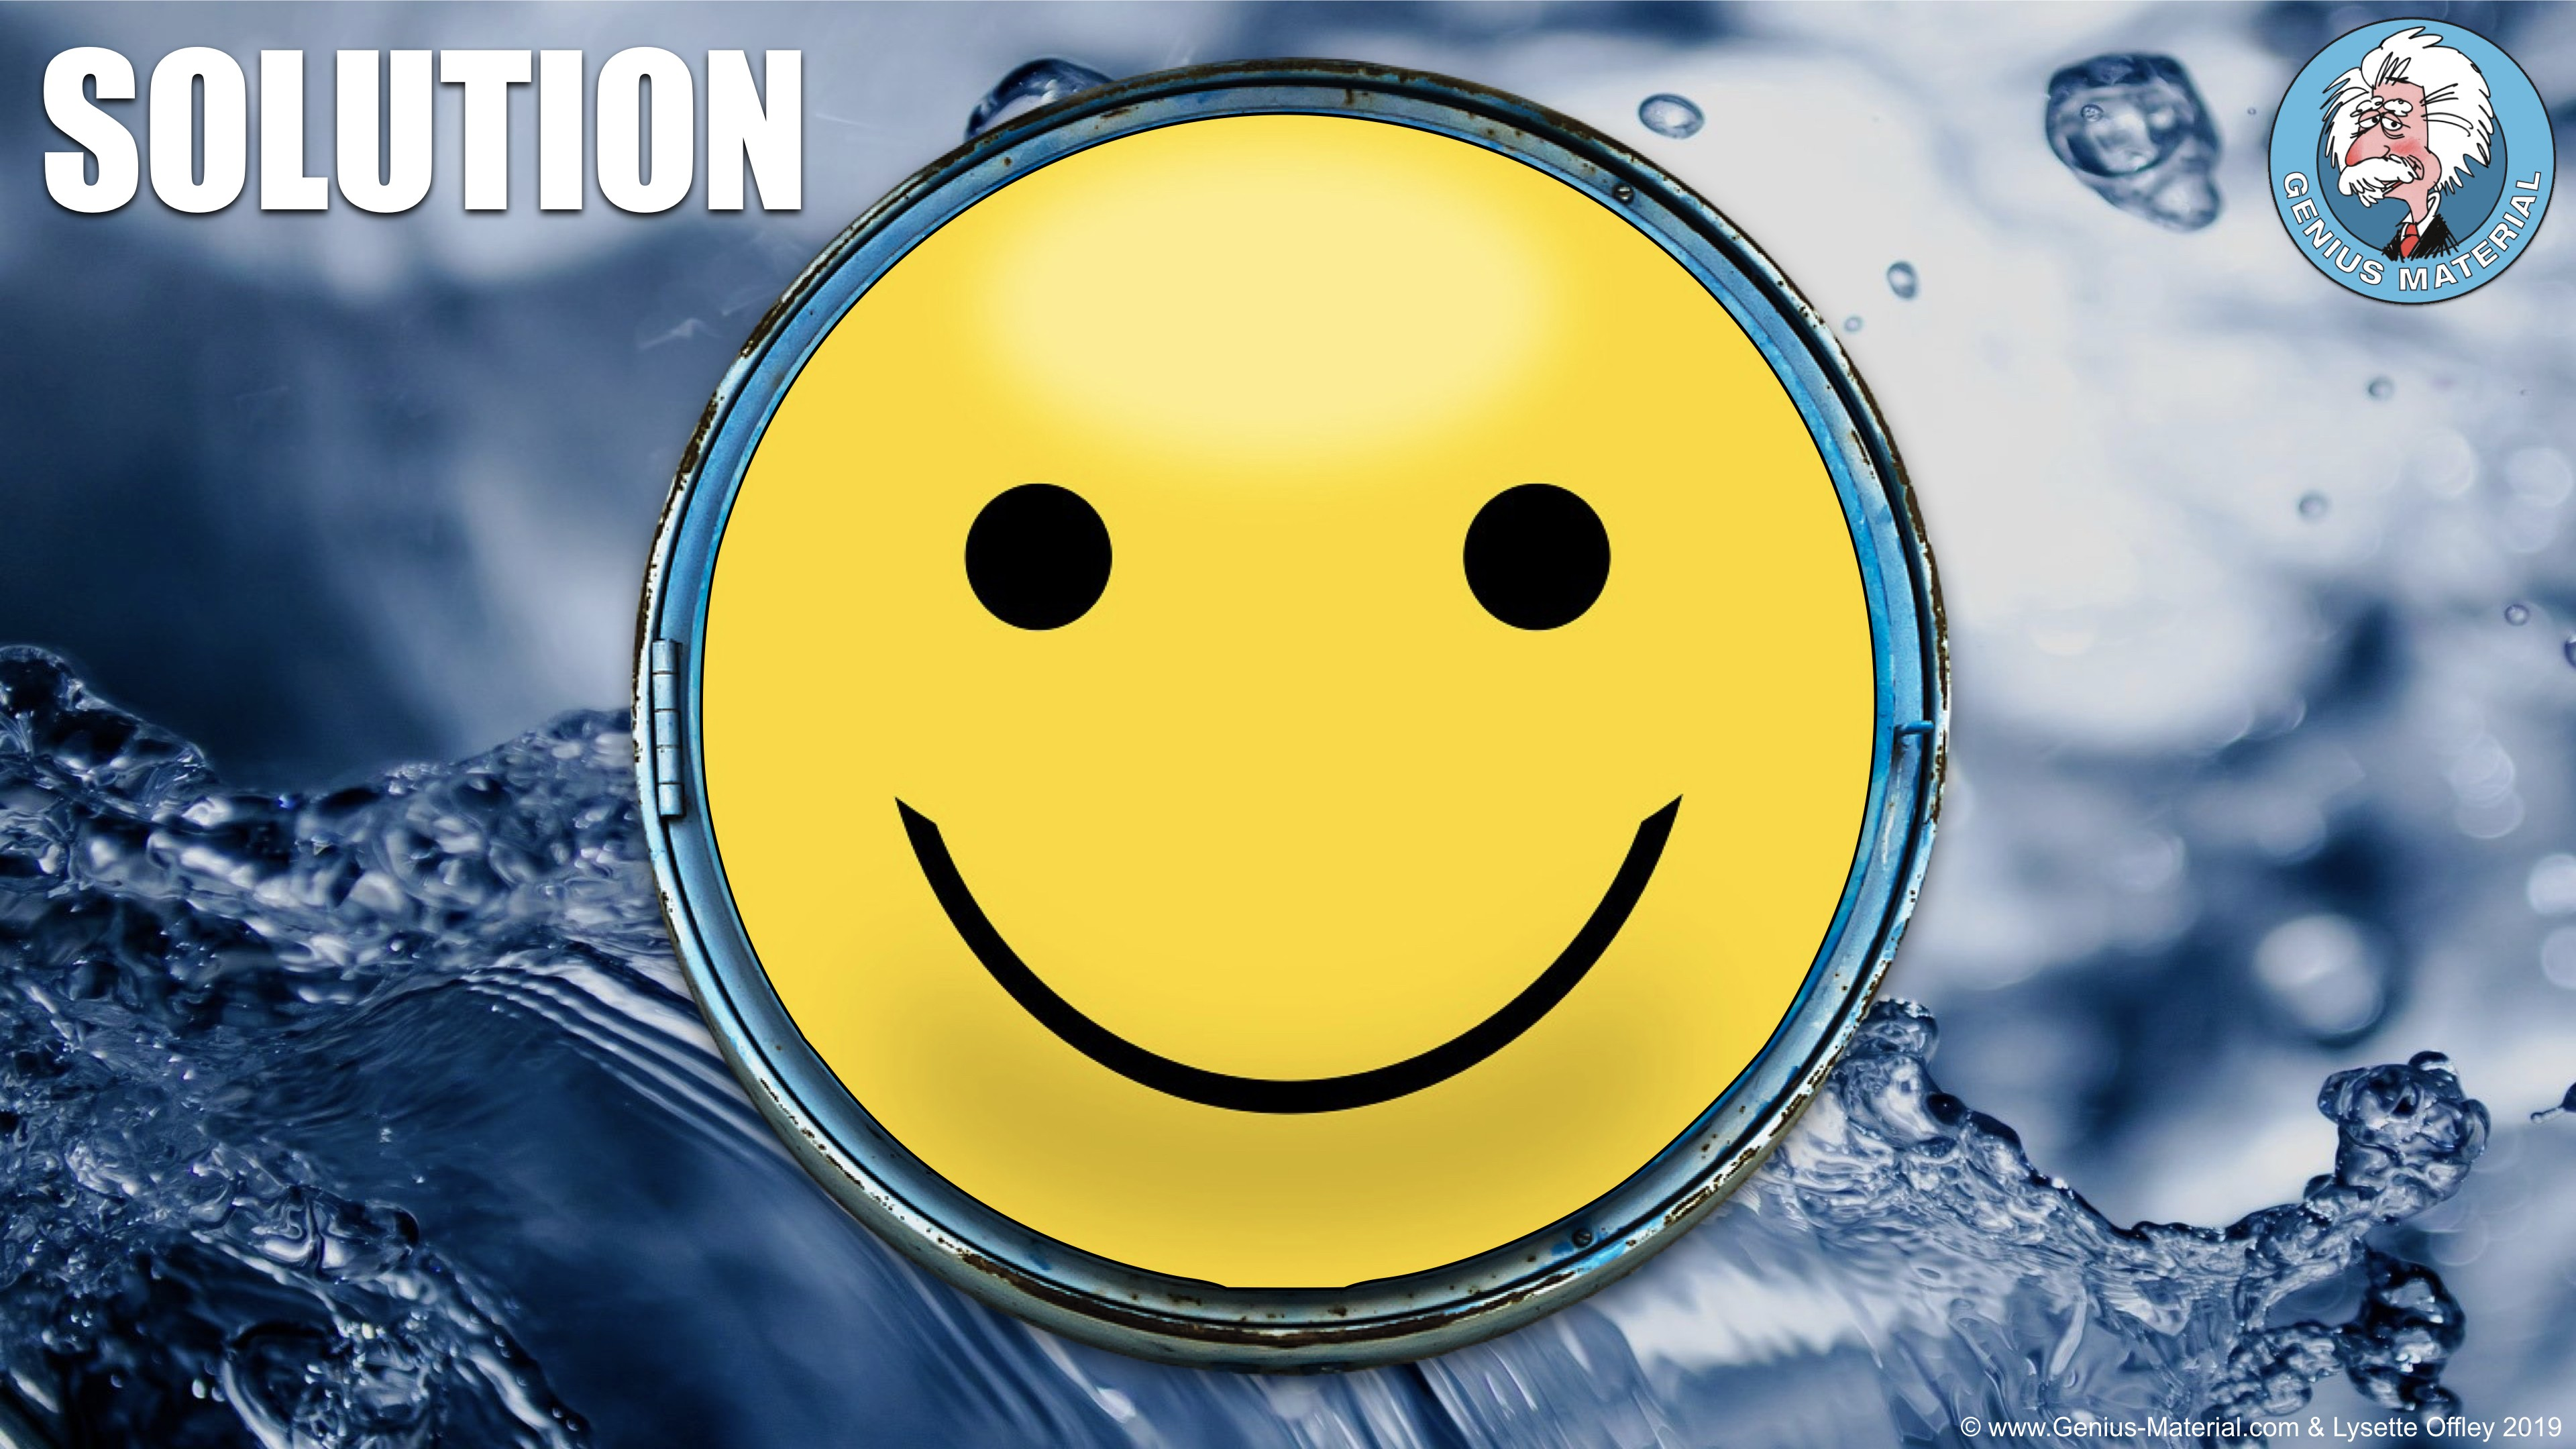 pass Diploma and Chartered Financial exams - smiley face